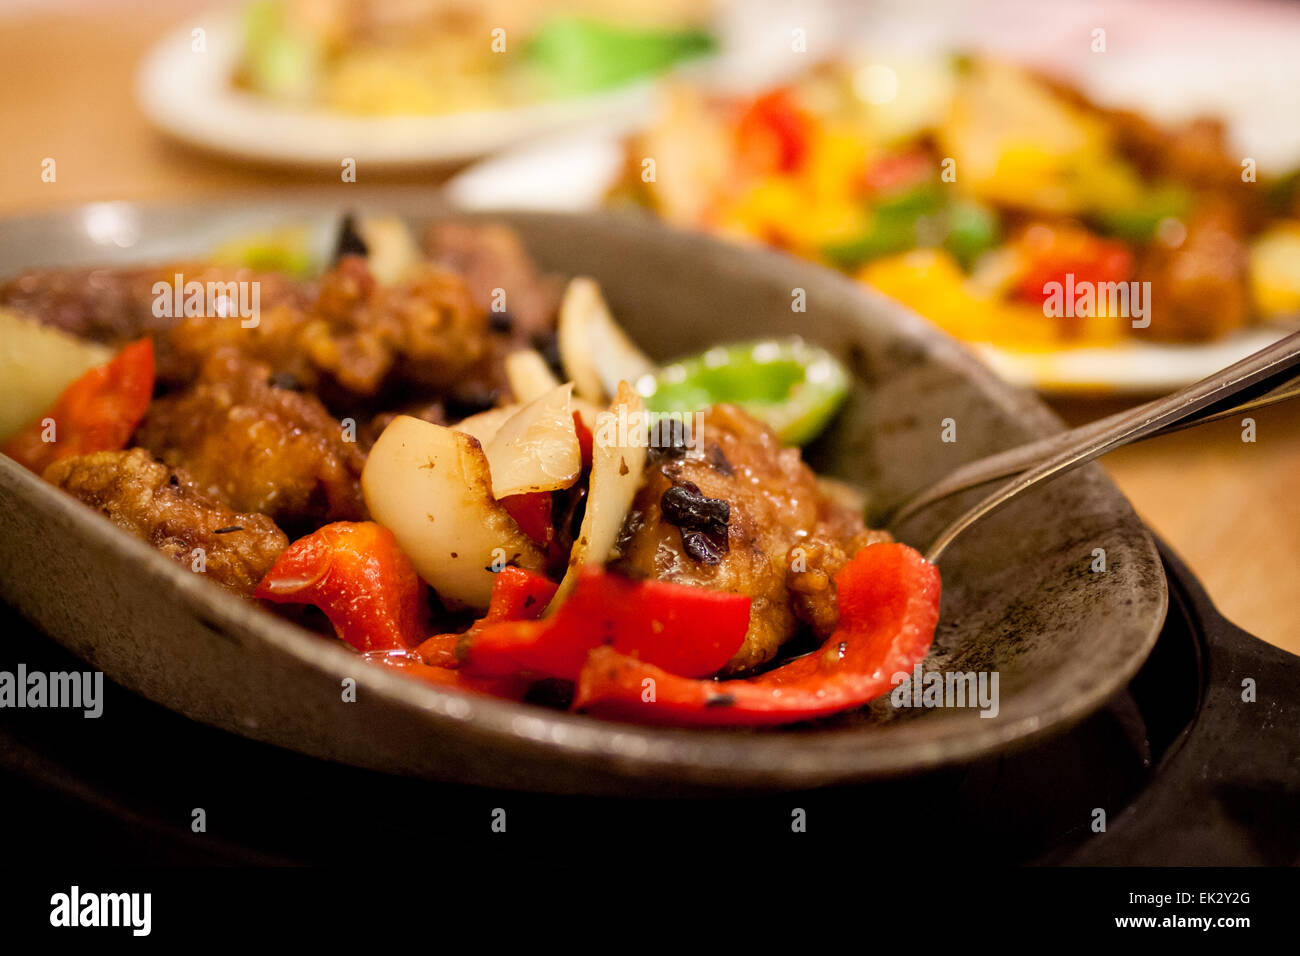 Chinese food: stir fry chicken and vegetables in a black bean sauce, served on a hot, cast iron plate. - Stock Image